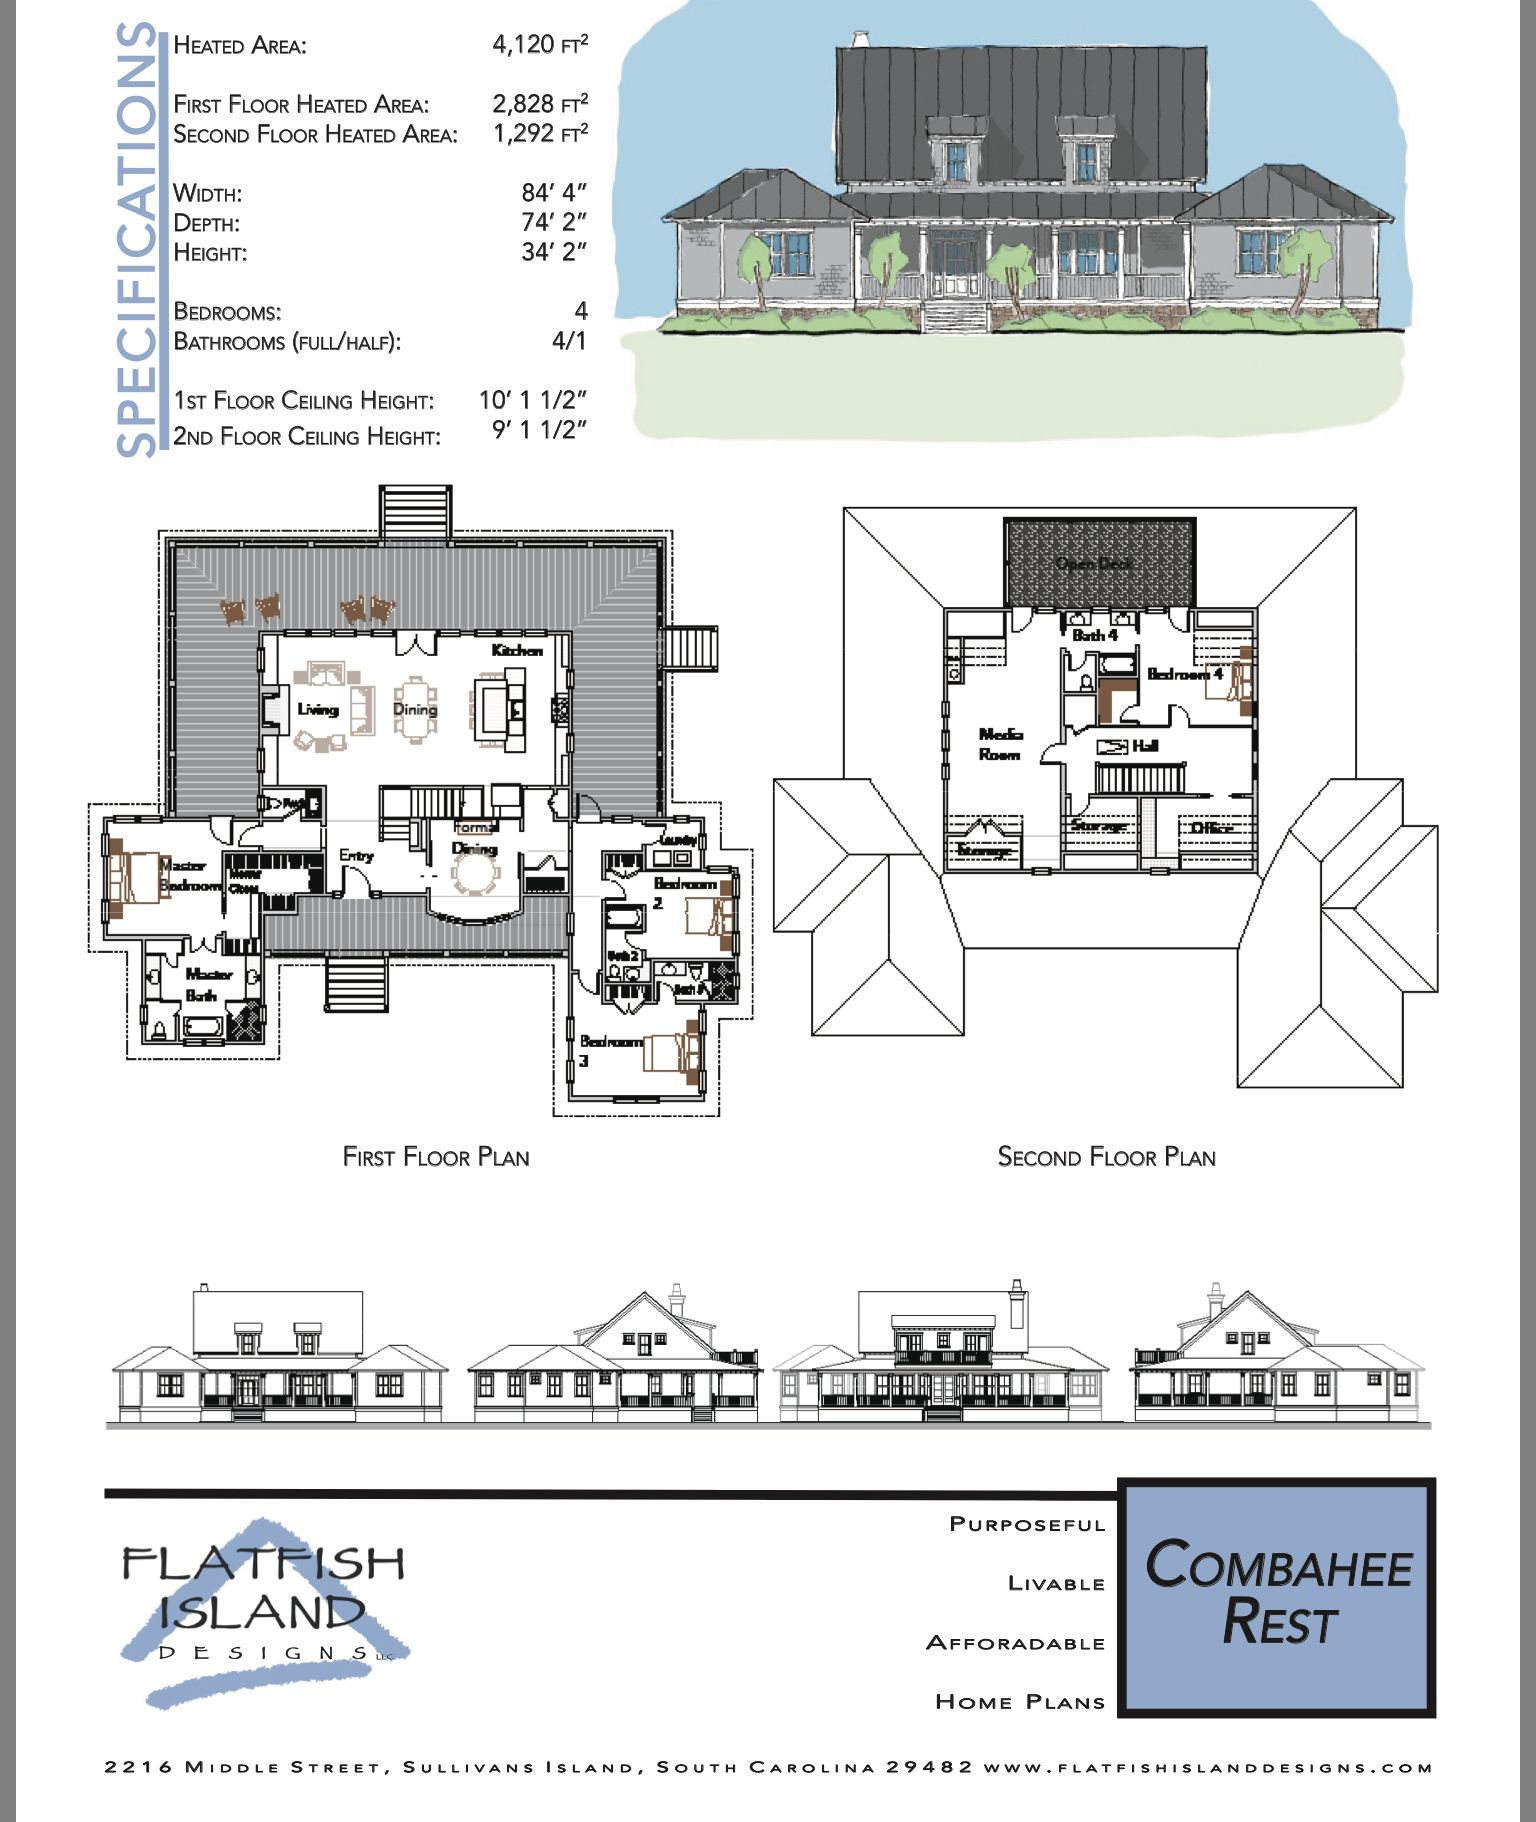 Pin By Ann Goss On House Plans Floor Plans House Plans Second Floor